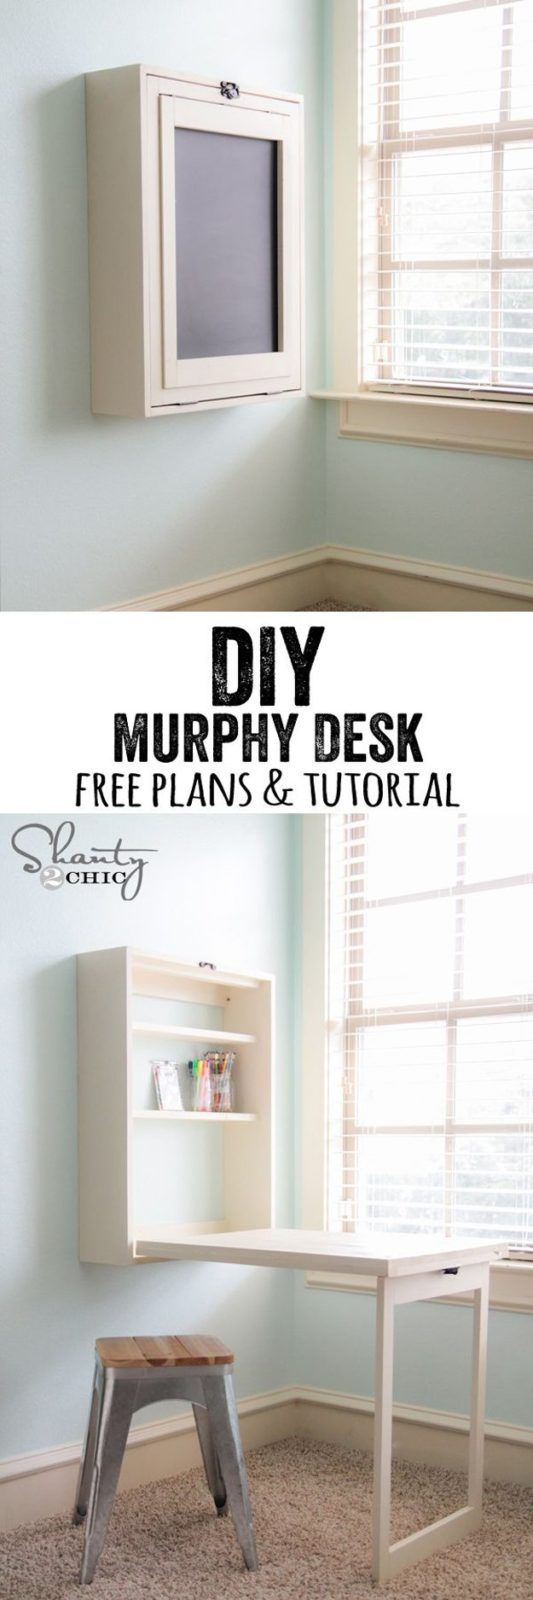 DIY Organizing and Storing Tutorial for Small Spaces | https://diyprojects.com/26-ingenius-diy-ideas-for-small-spaces/